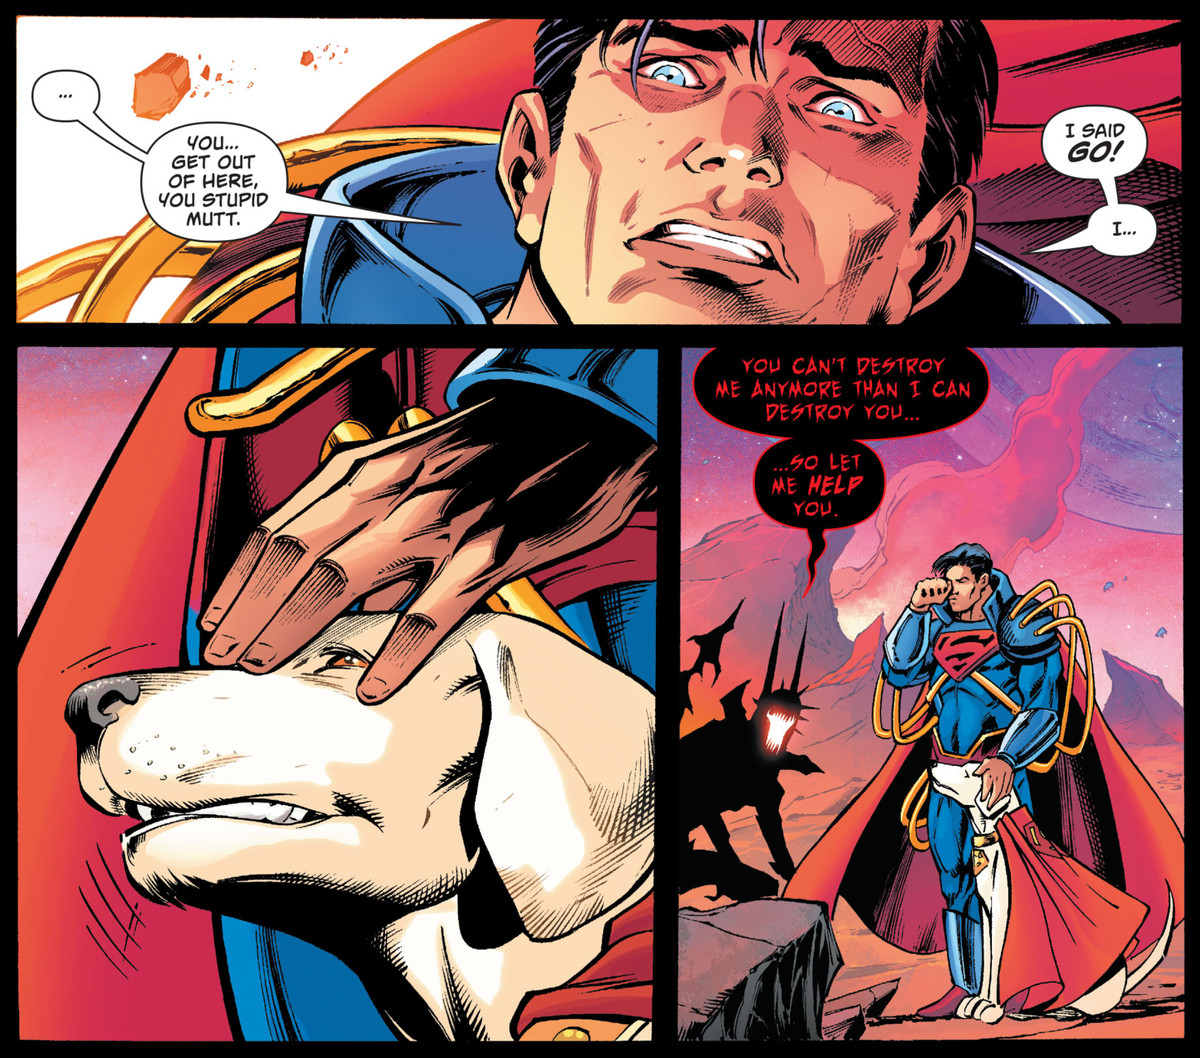 """""""Get out of here you stupid mutt,"""" Superboy Prime begs Krypto the Superdog as he stands loyally by him, in Dark Nights: Death Metal The Secret Origin #1, DC Comics (2020)."""